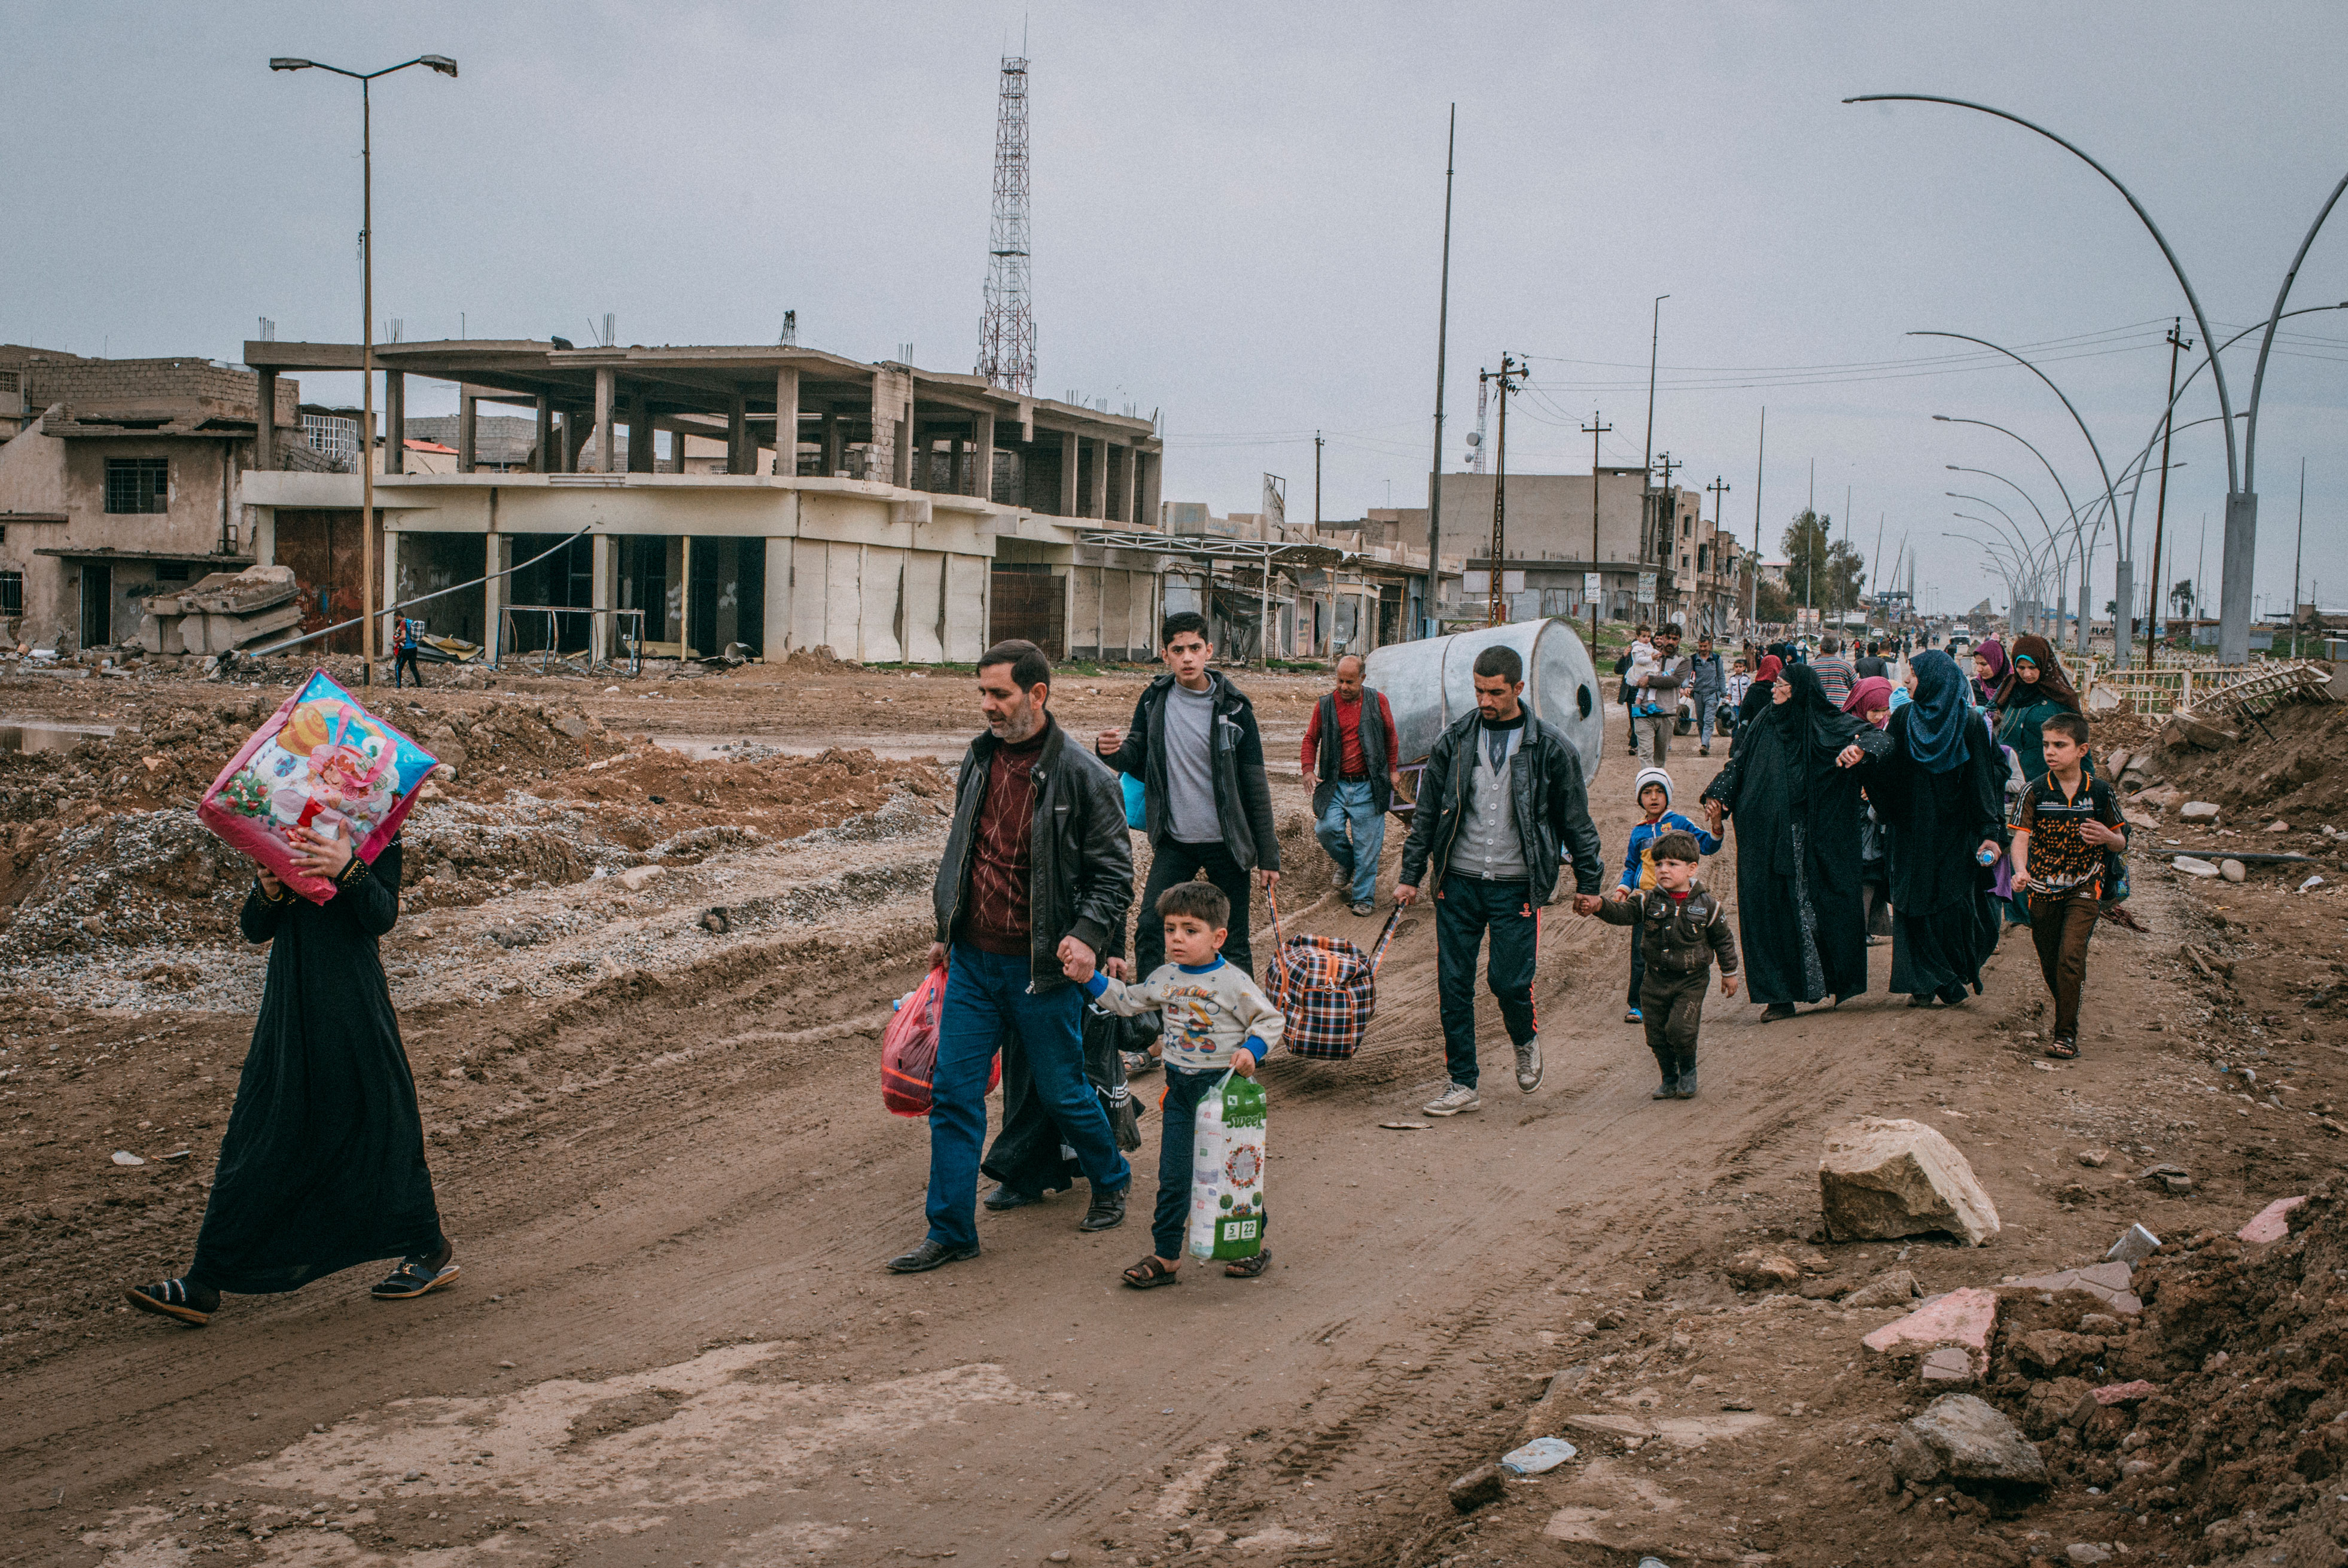 Civilians walk in Baghdad road to go back to their homes after their neighborhood has been liberated, in southwest Mosul.